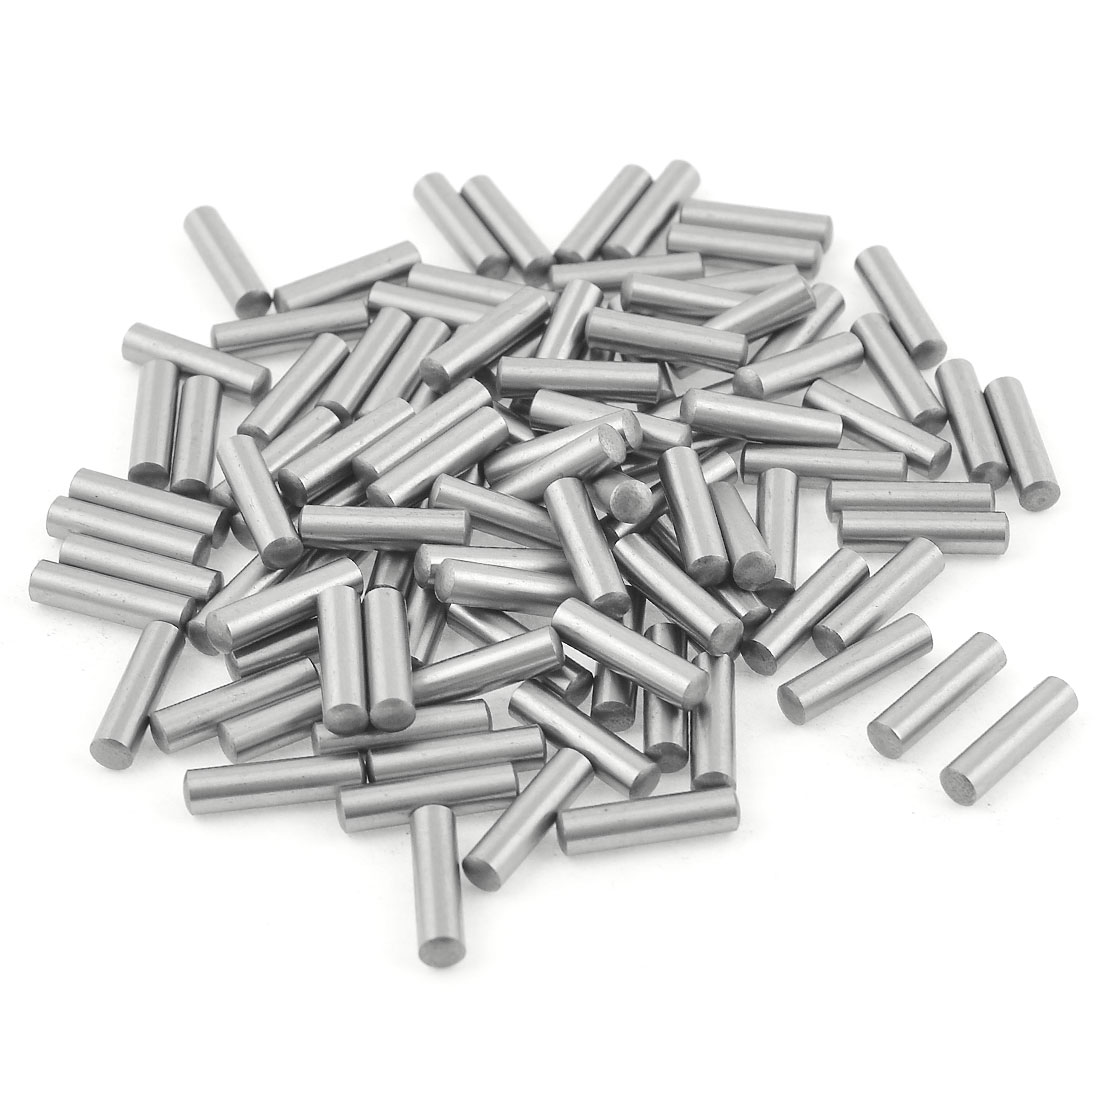 100 Pcs Stainless Steel 3.2mm x 15.8mm Dowel Pins Fasten Elements